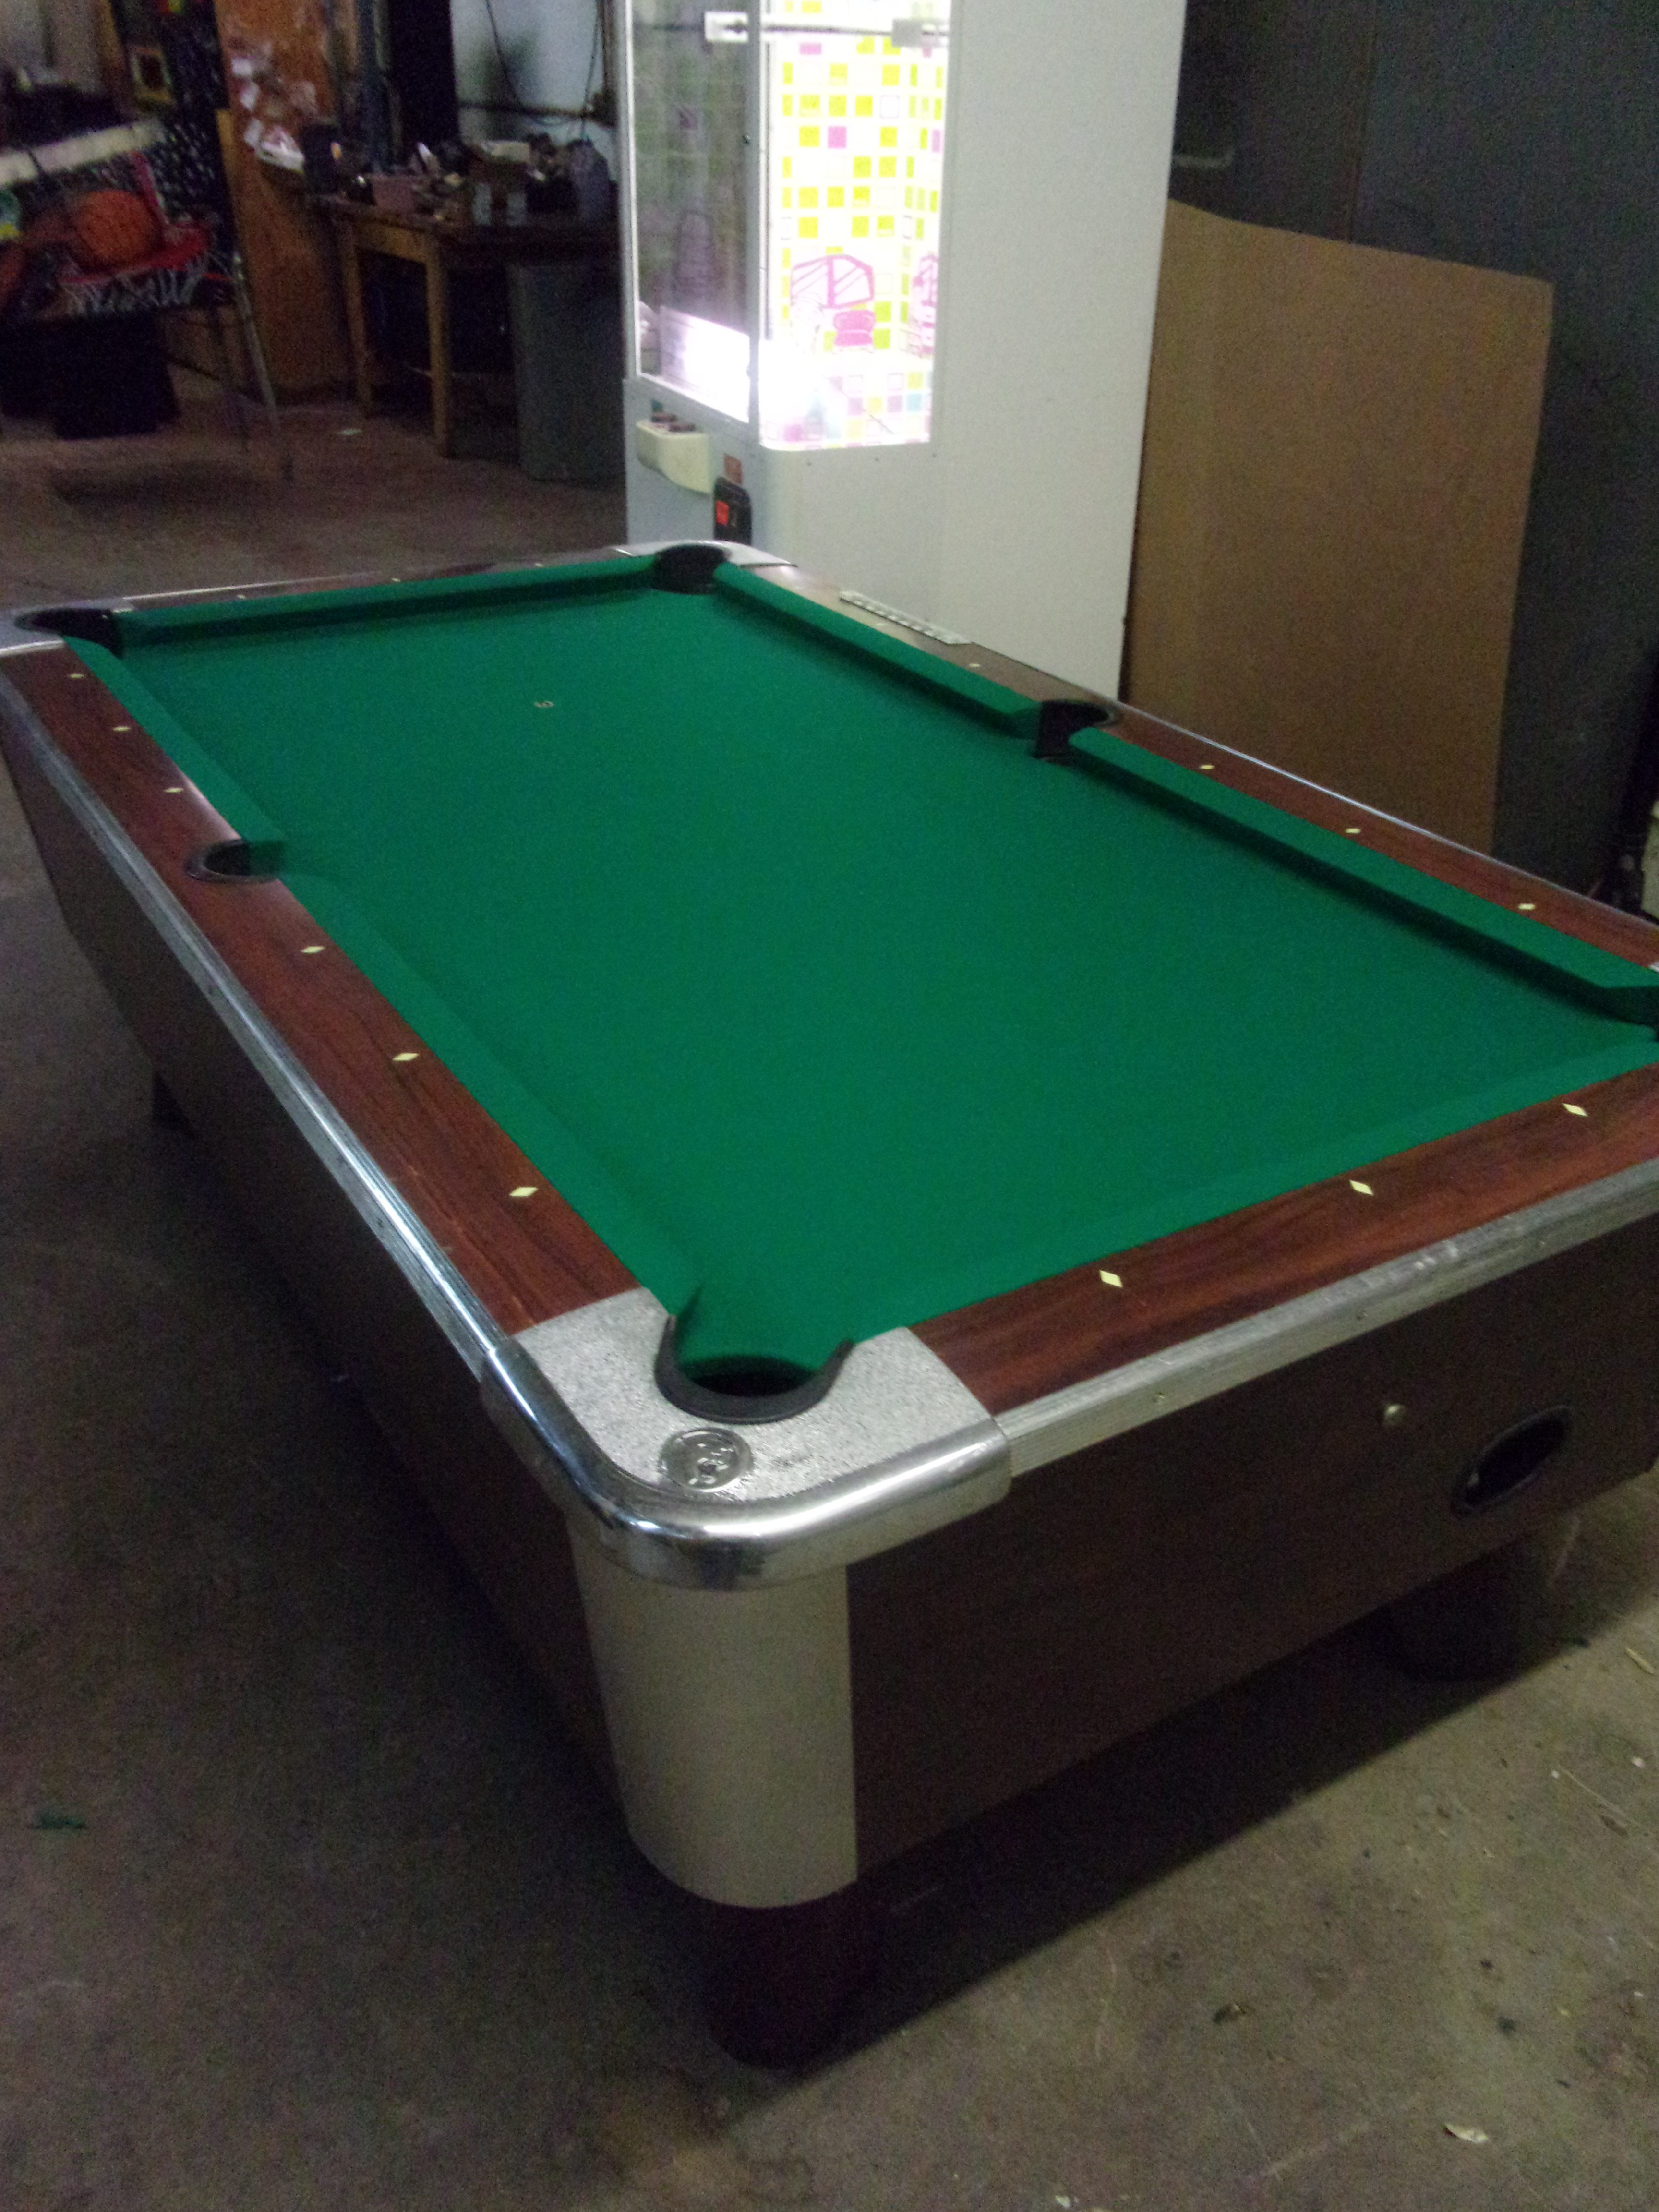 Valley Ft Coin Op Pool Table PT Thomas Games - 6 1 2 foot pool table